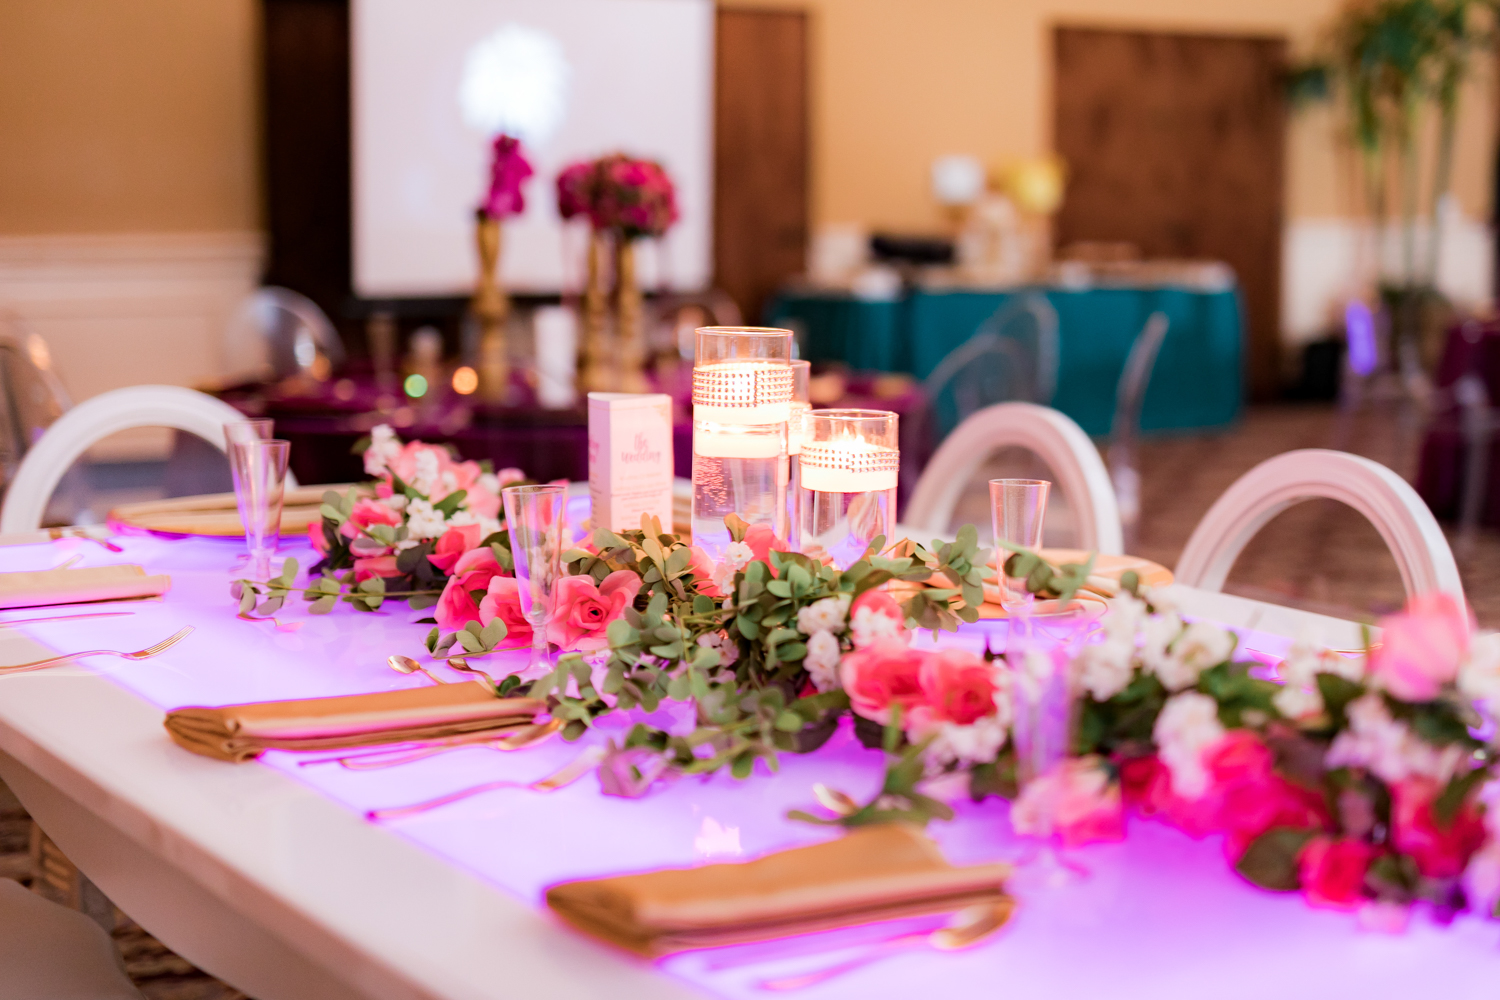 Pink and purple wedding reception table lit with led lighting.